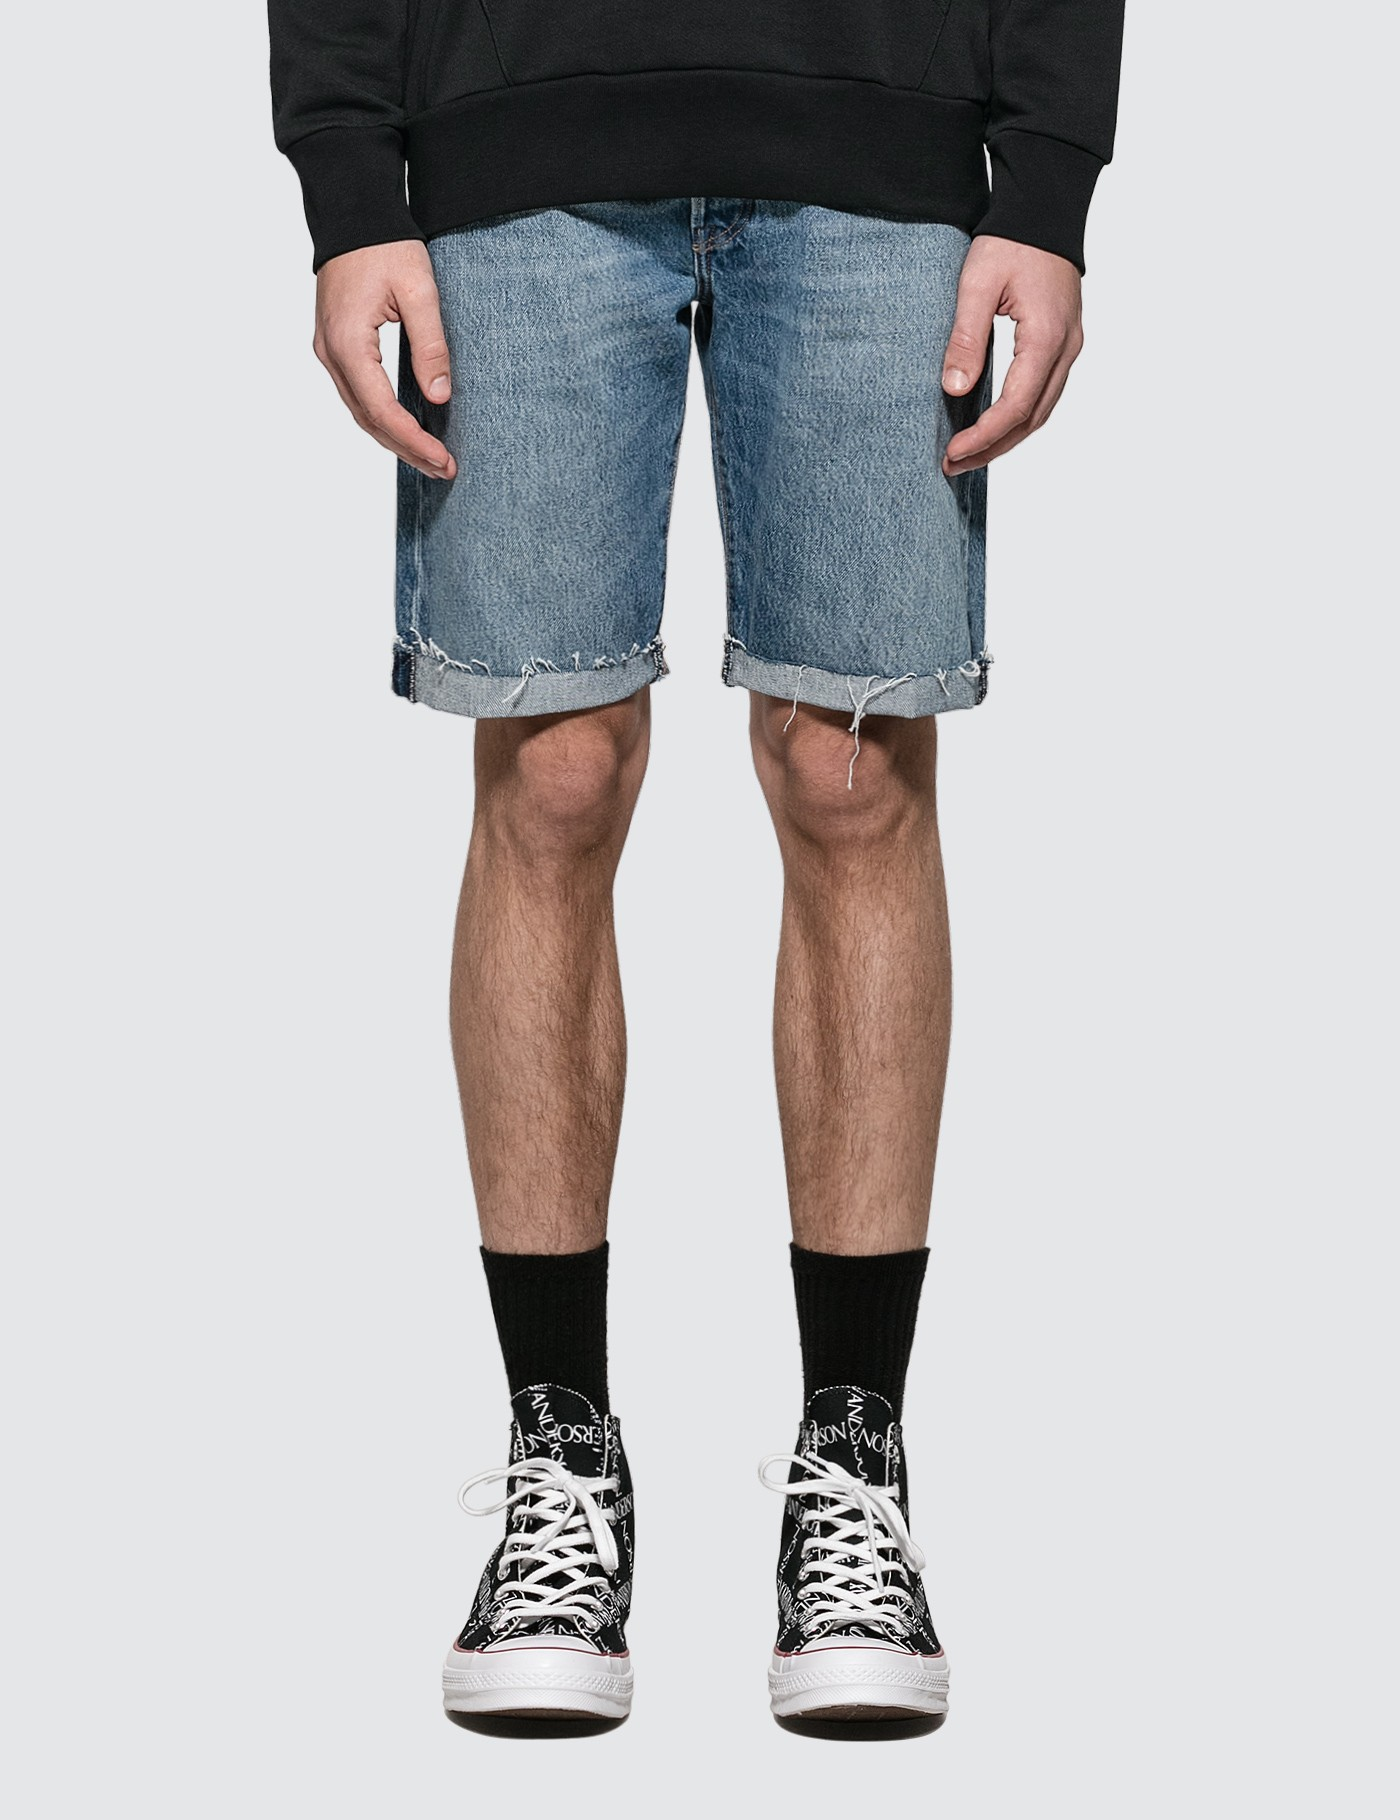 Leviu2019s 501 Original Cutoff Denim Shorts